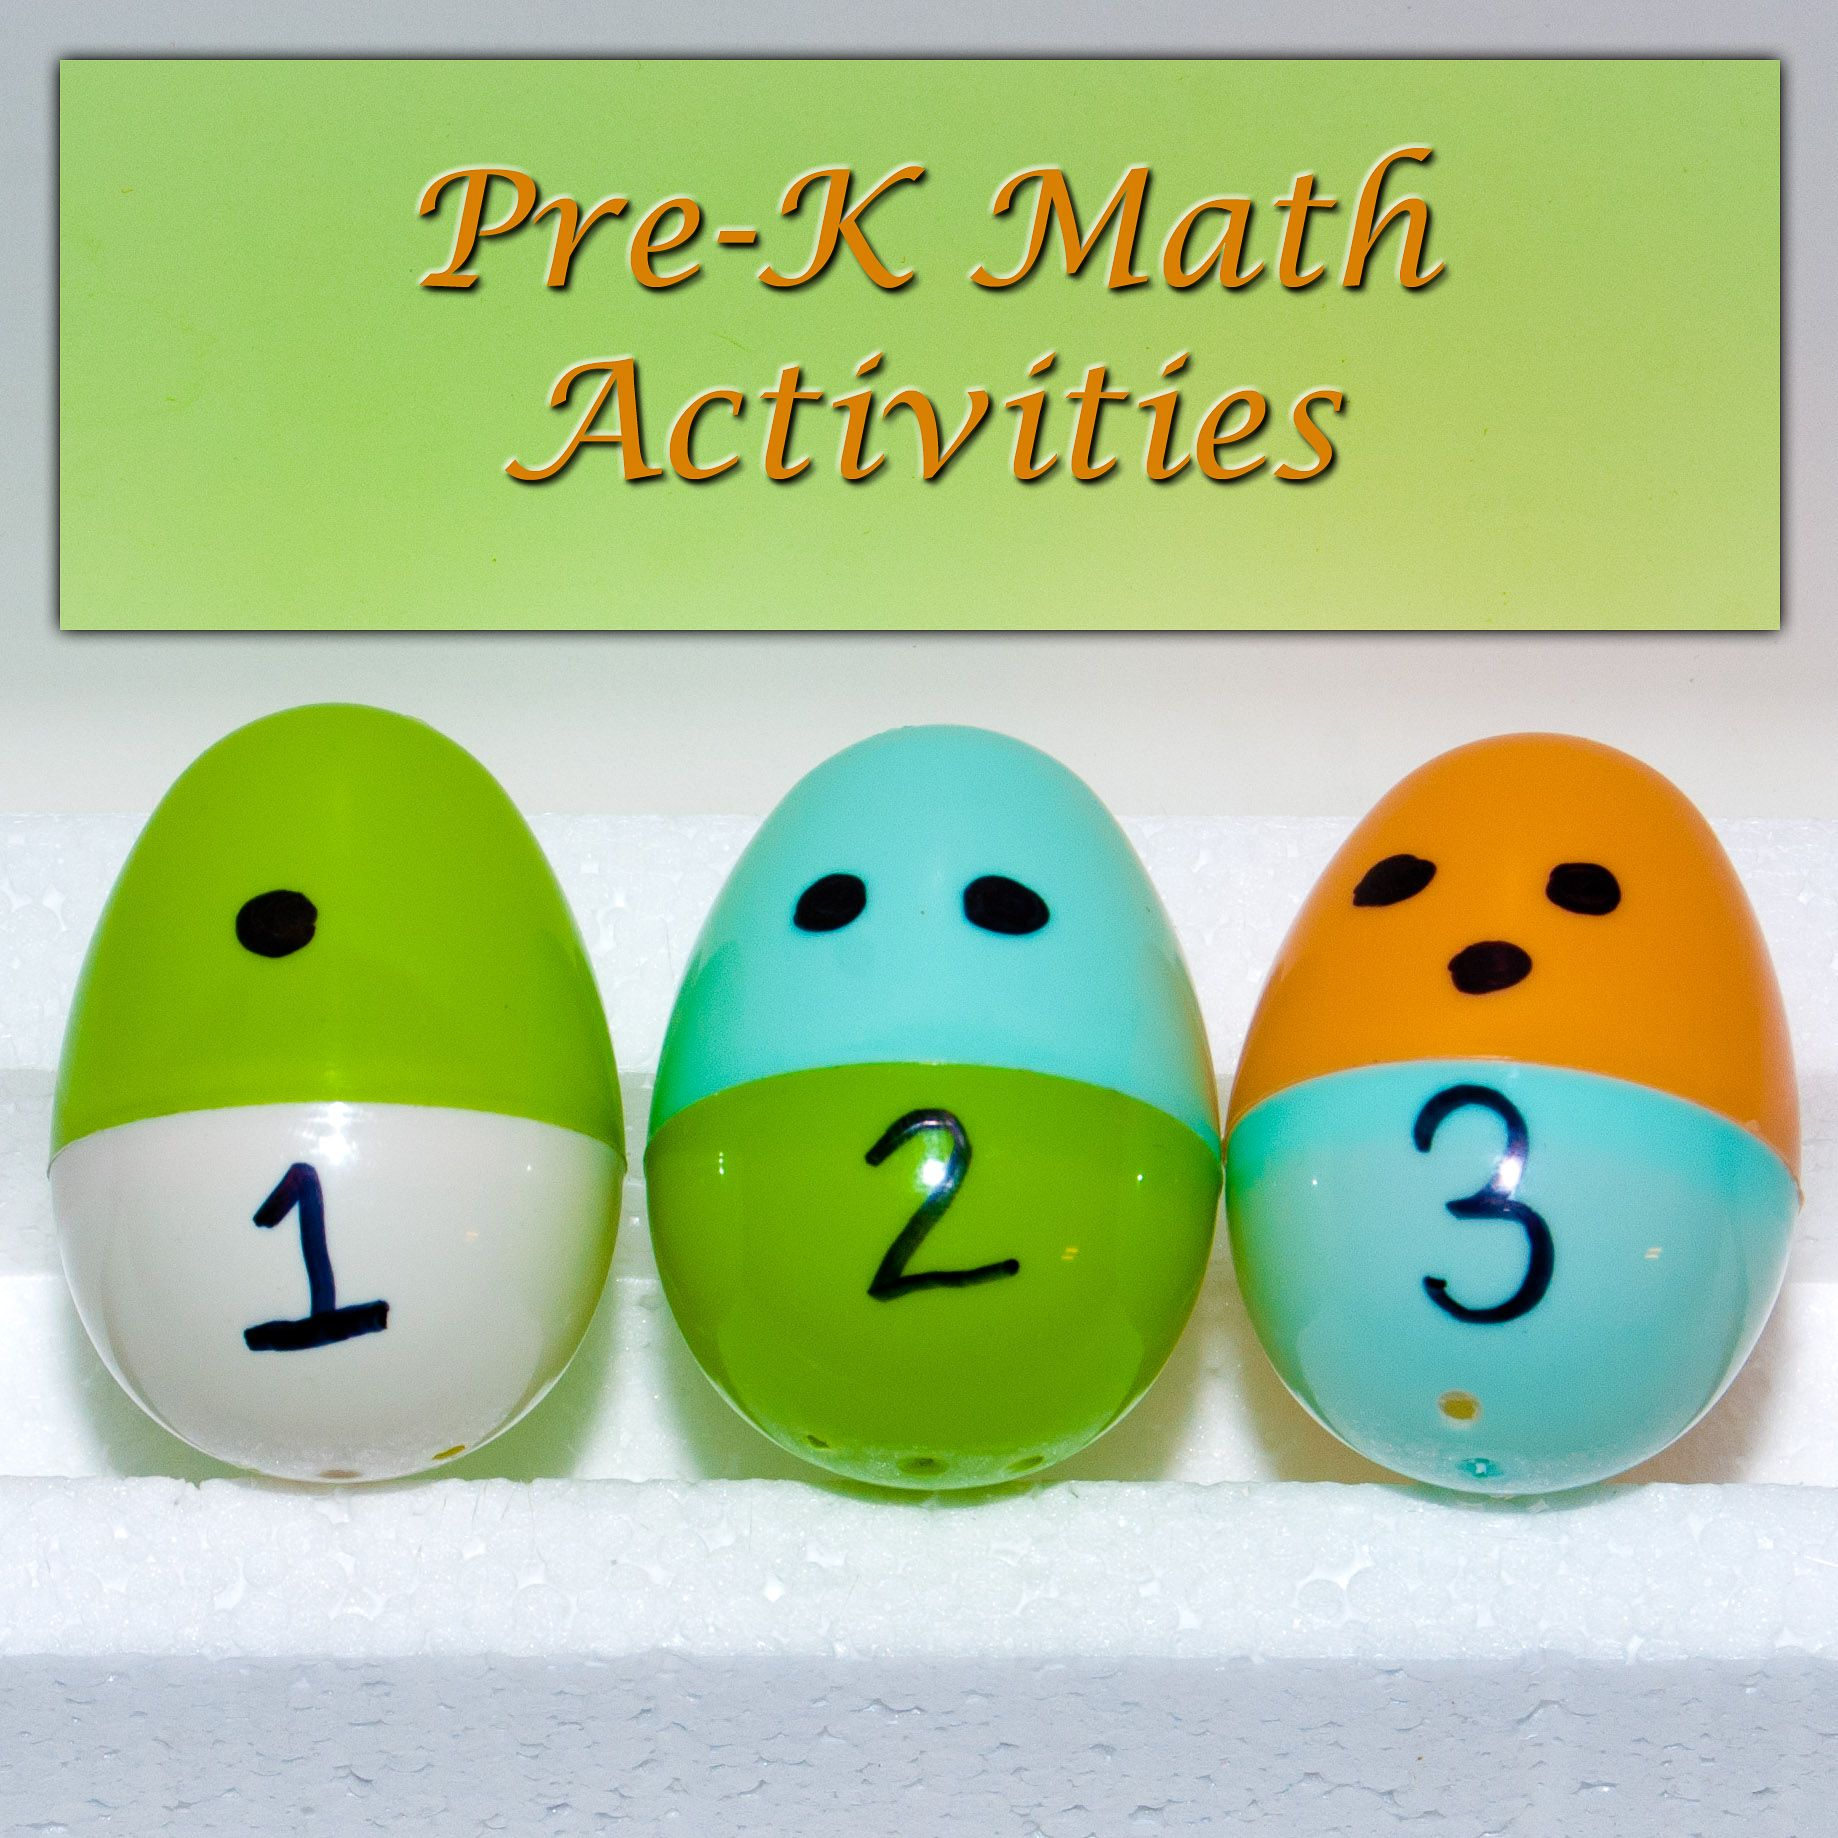 Pre K Math Activities A Easter Eggs Matching The To